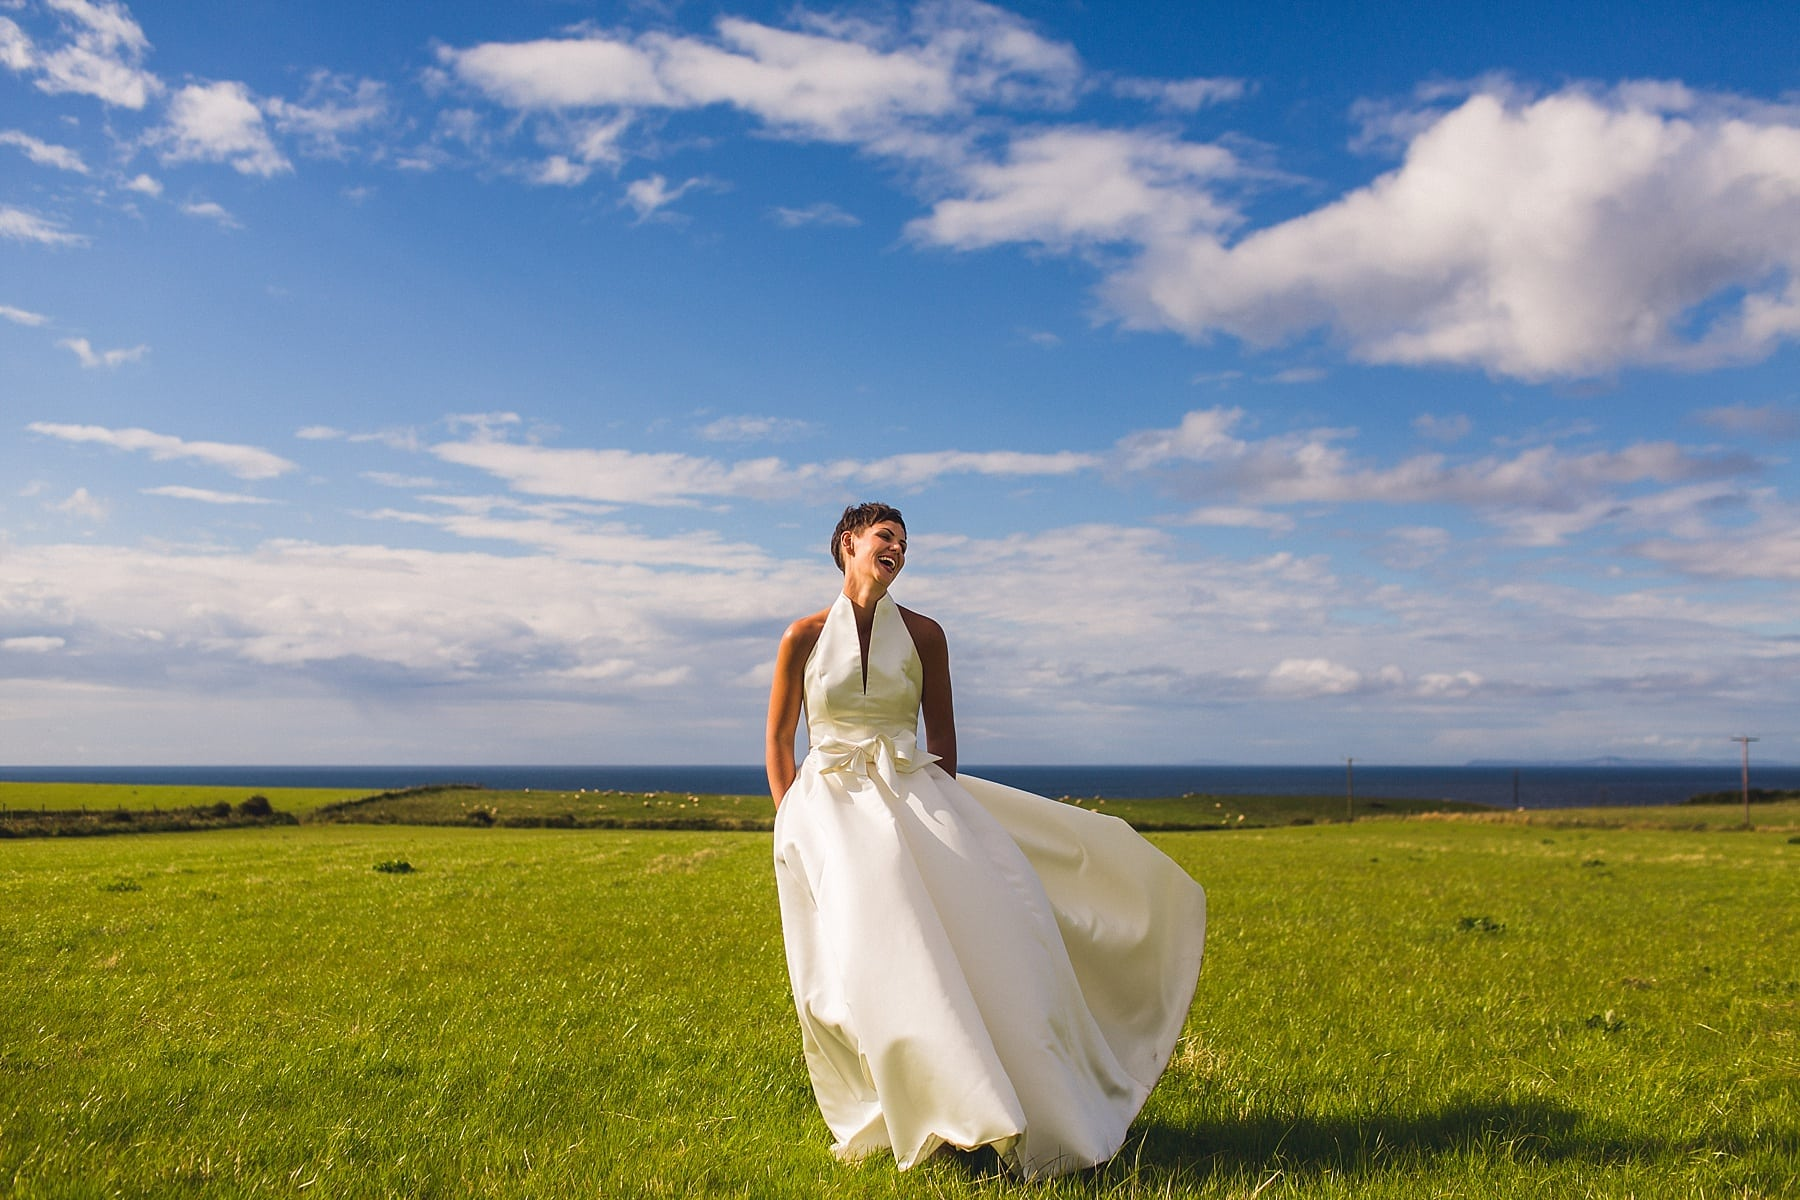 McShane Glen Cottages Wedding,Northern Ireland wedding photographer,north coast wedding venue,bride wedding dress pockets,joyful,fun,